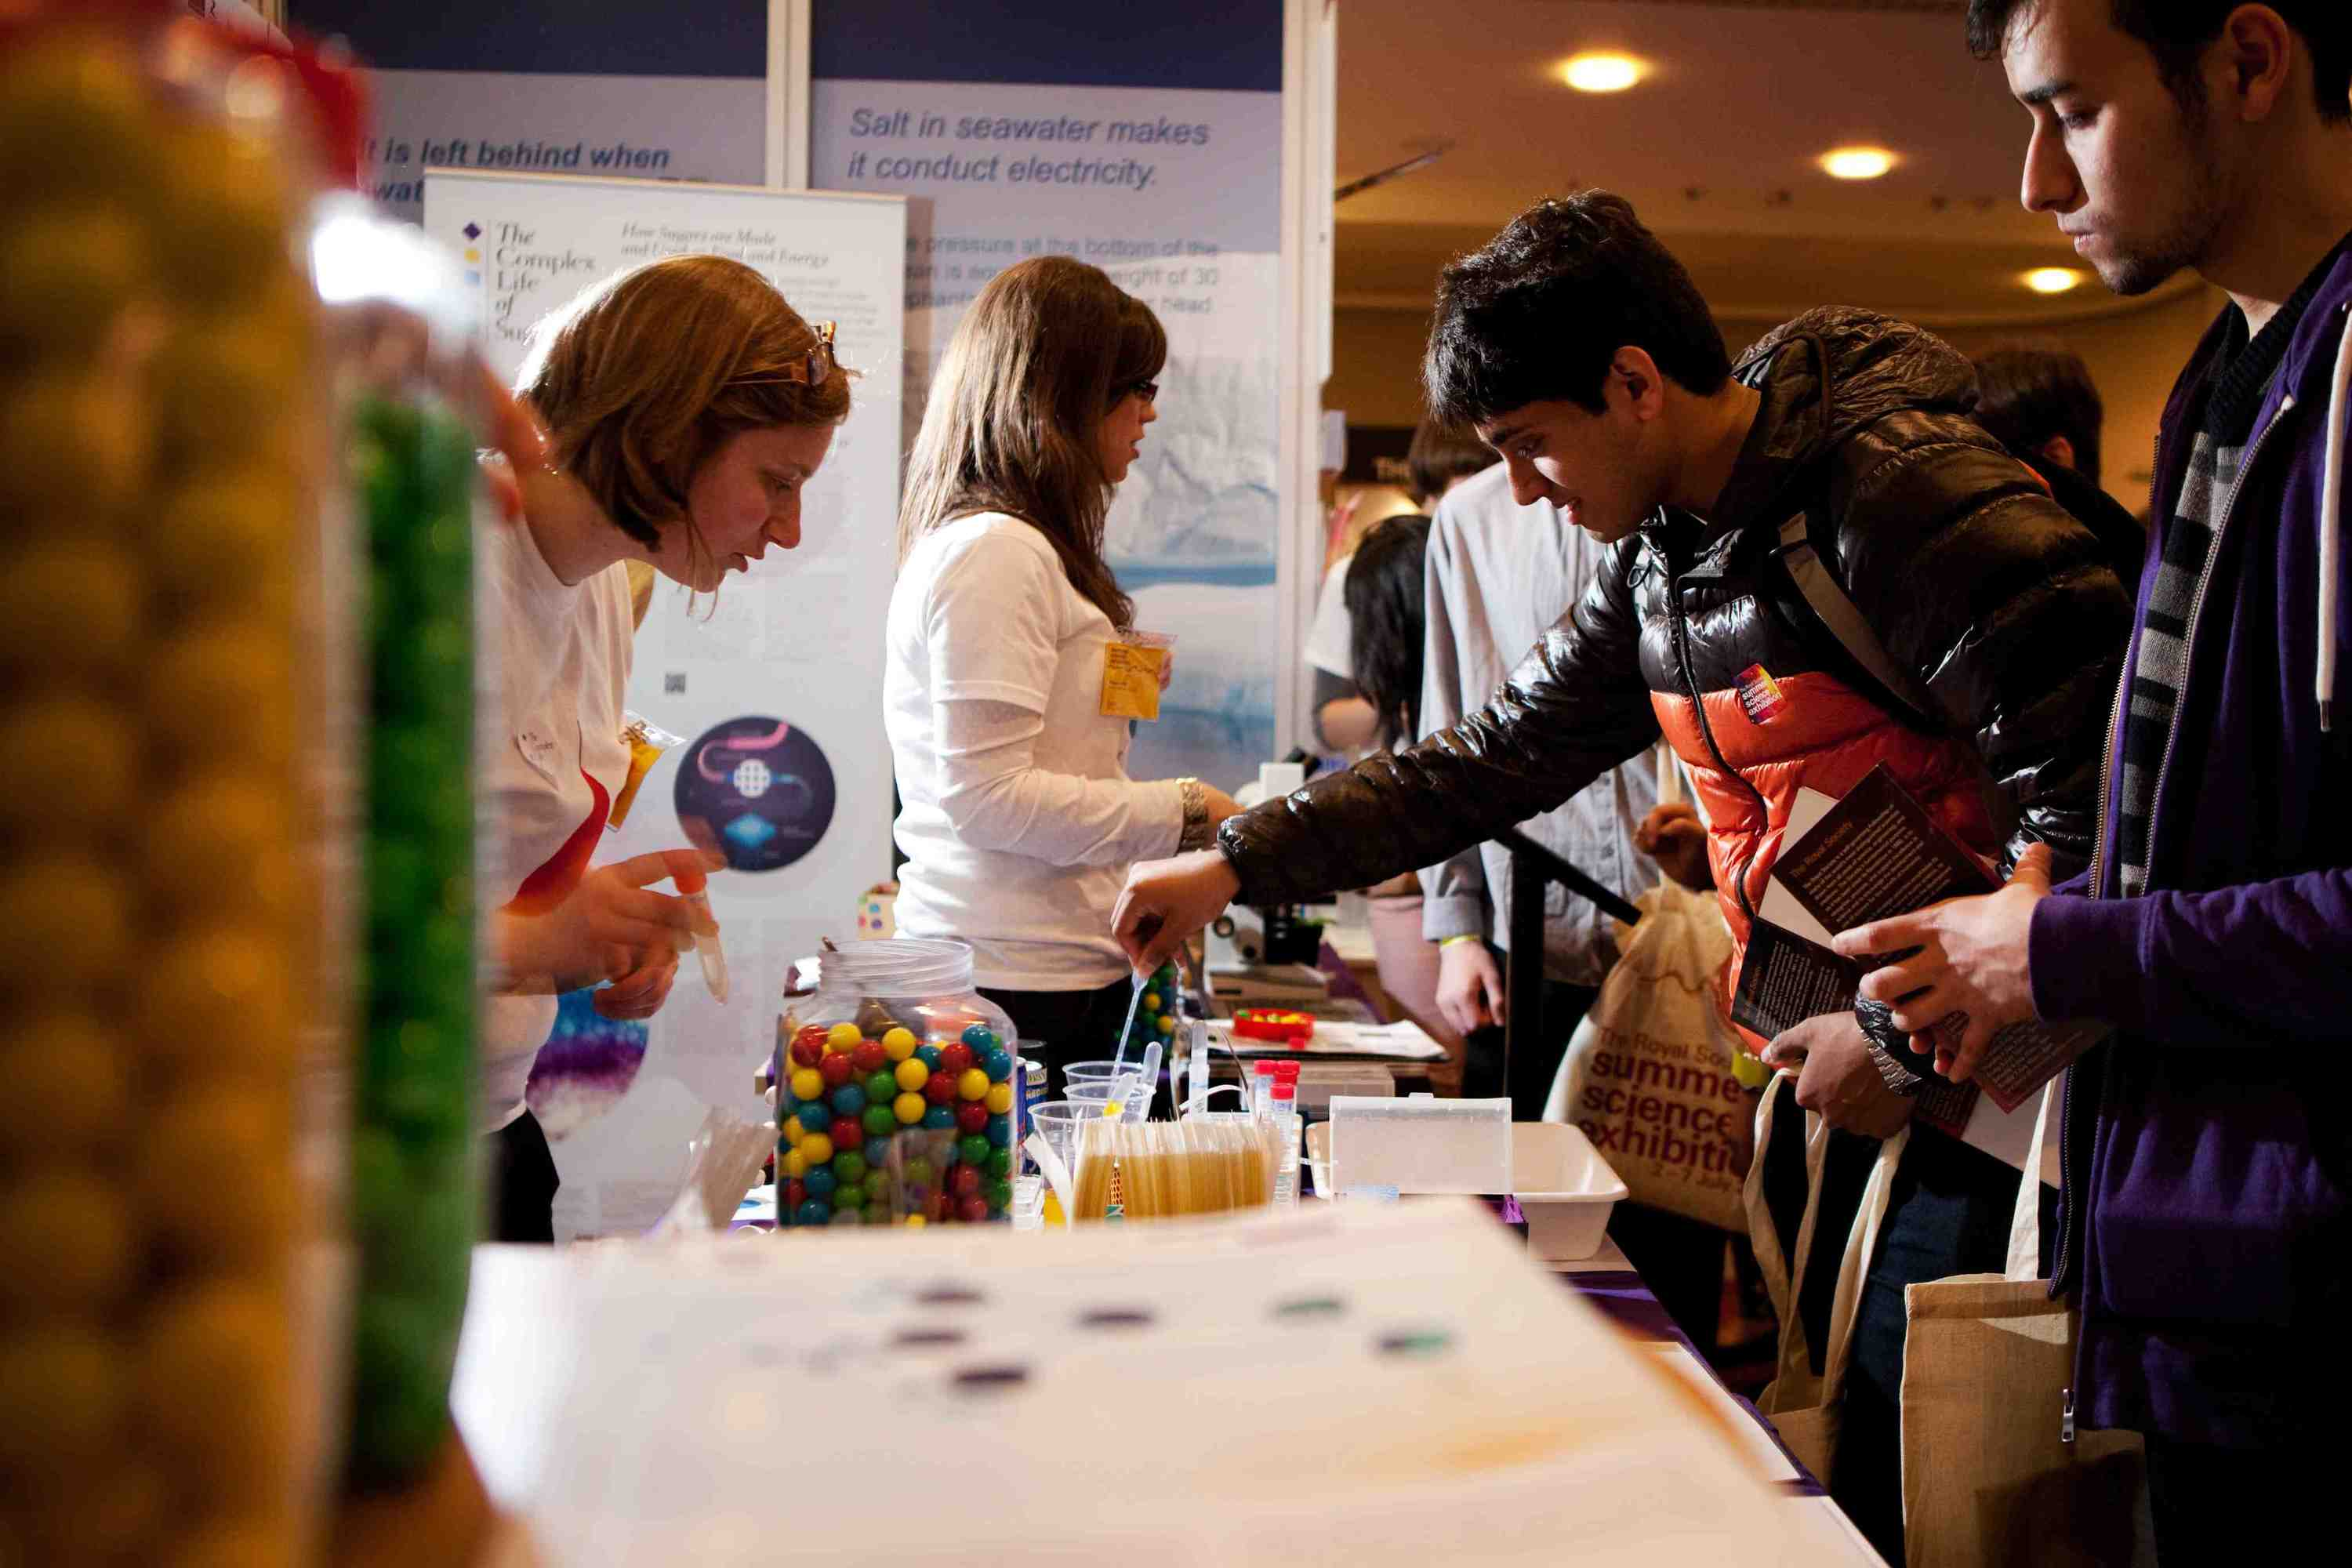 The Royal Society Summer Science Exhibition